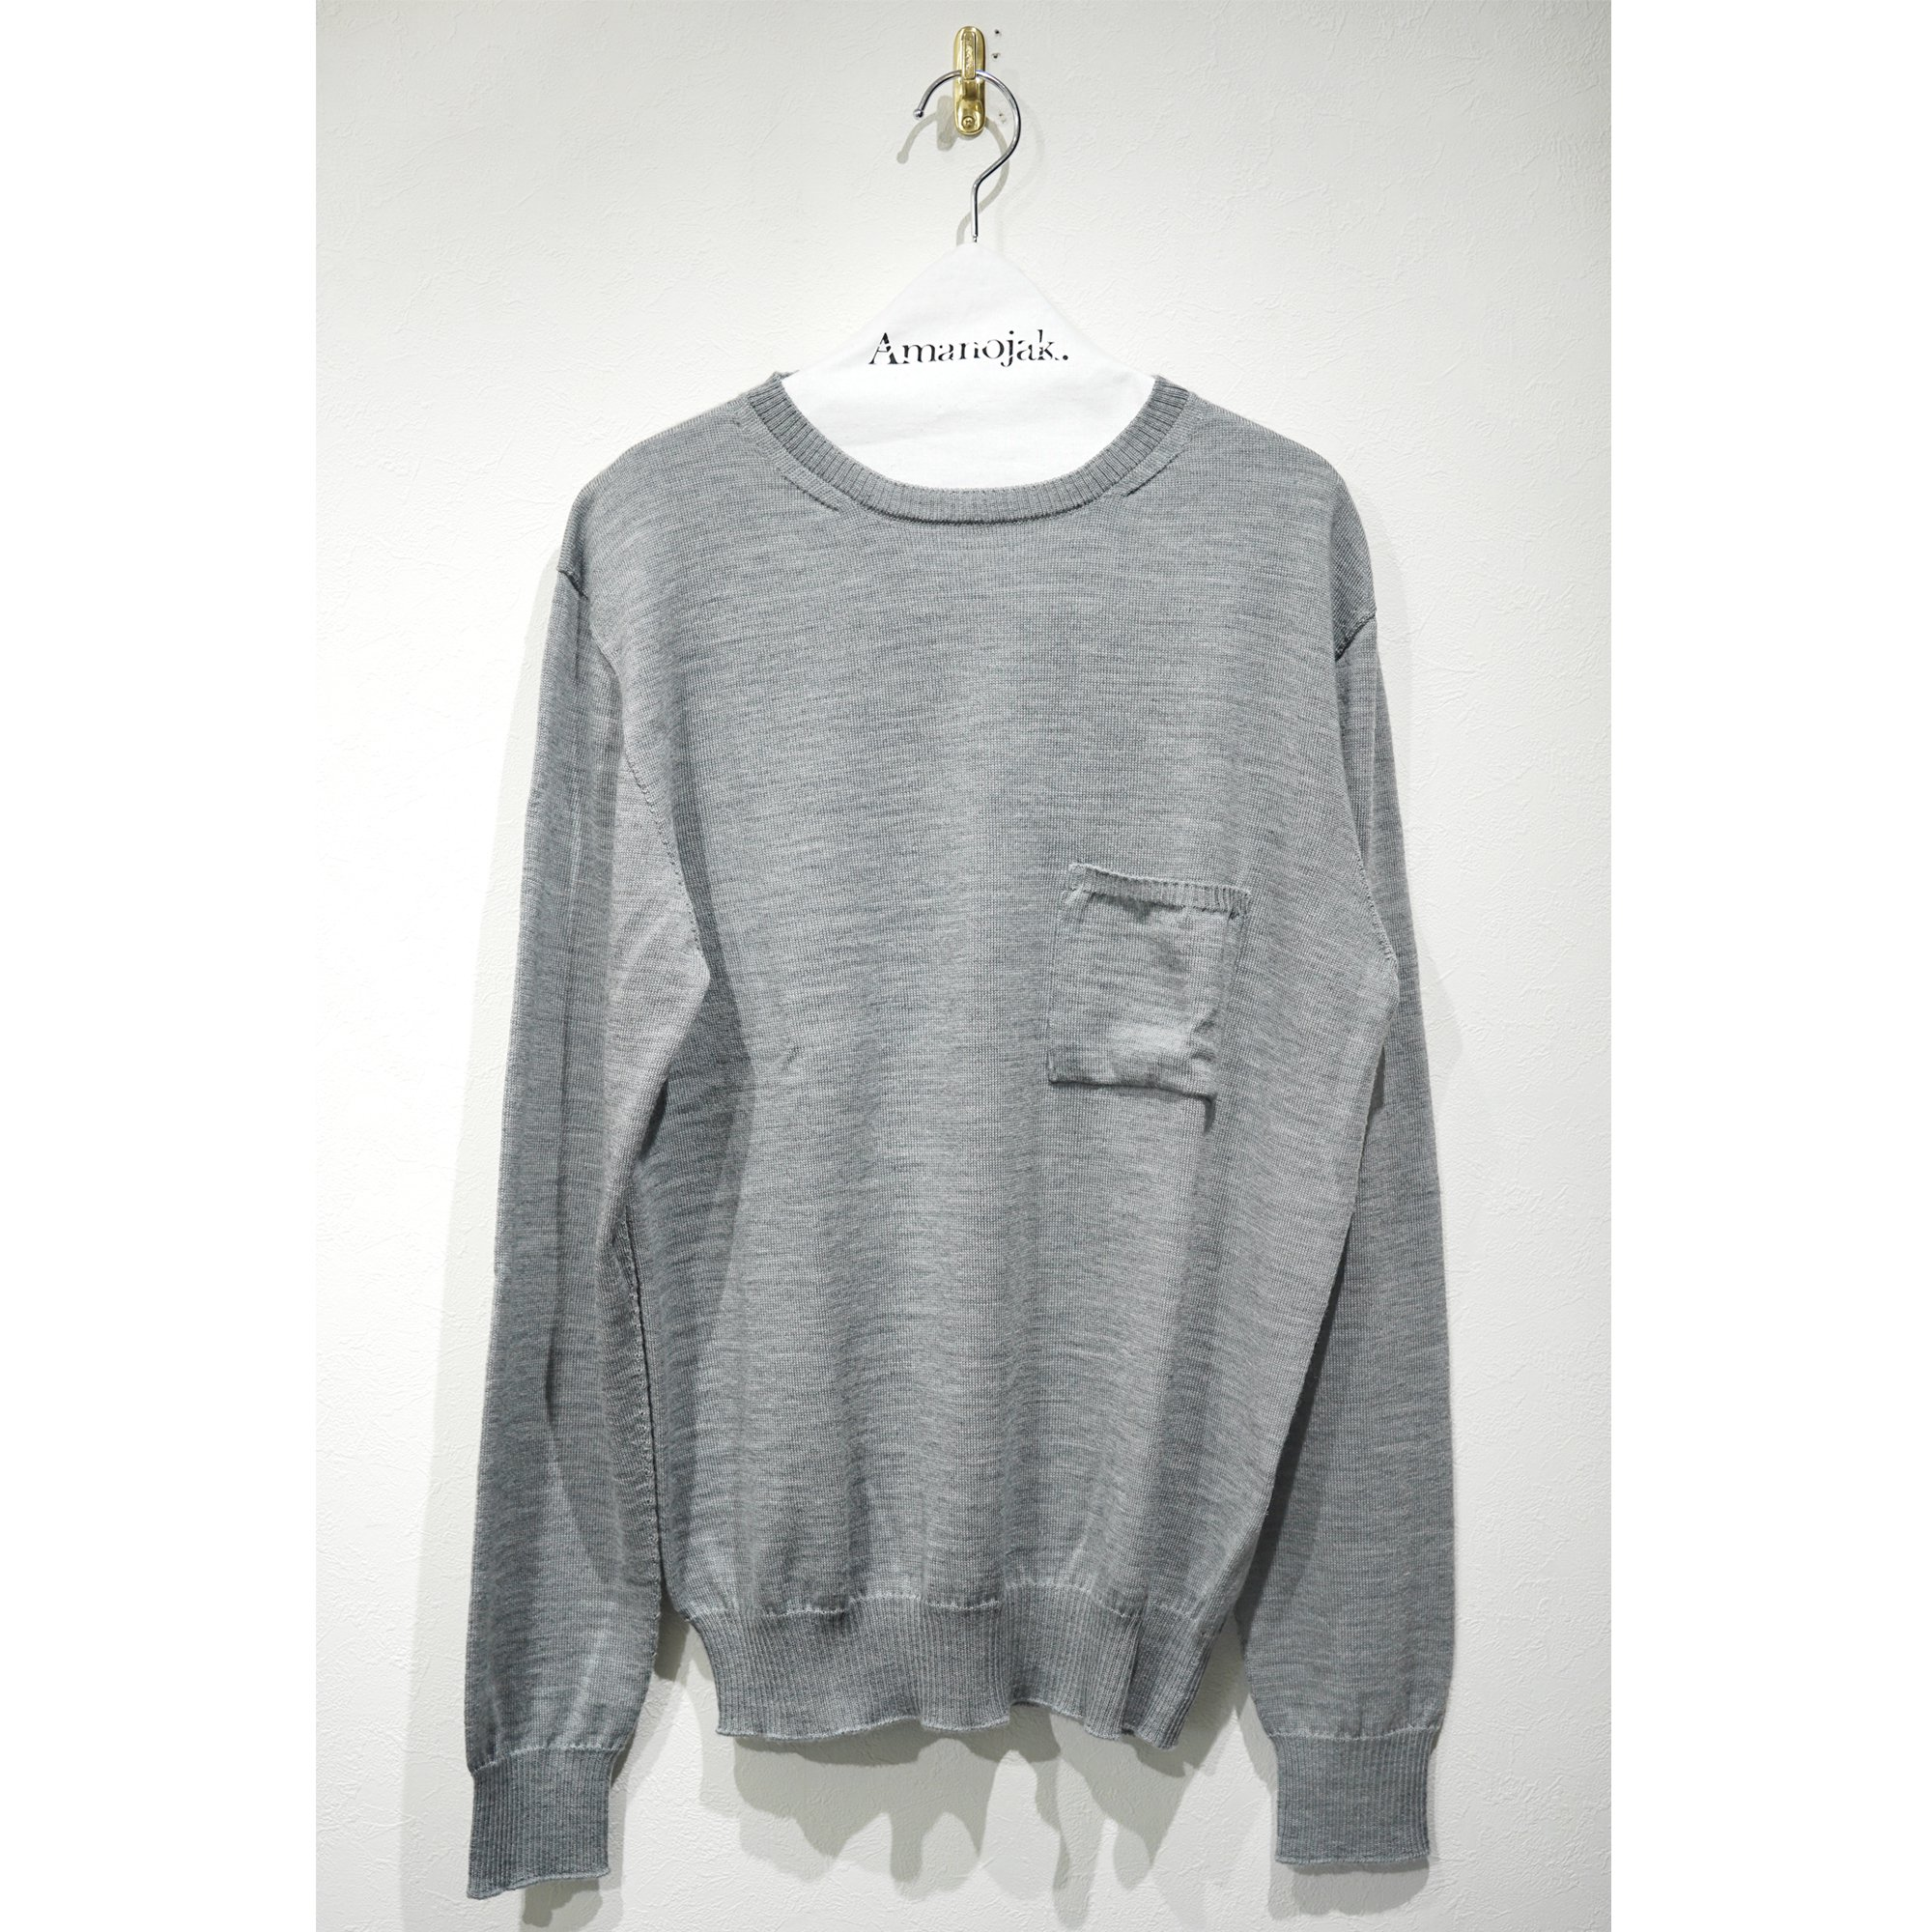 MASTER&Co.-WHOLEGARMENT CREW NECK KNIT LT GRAY